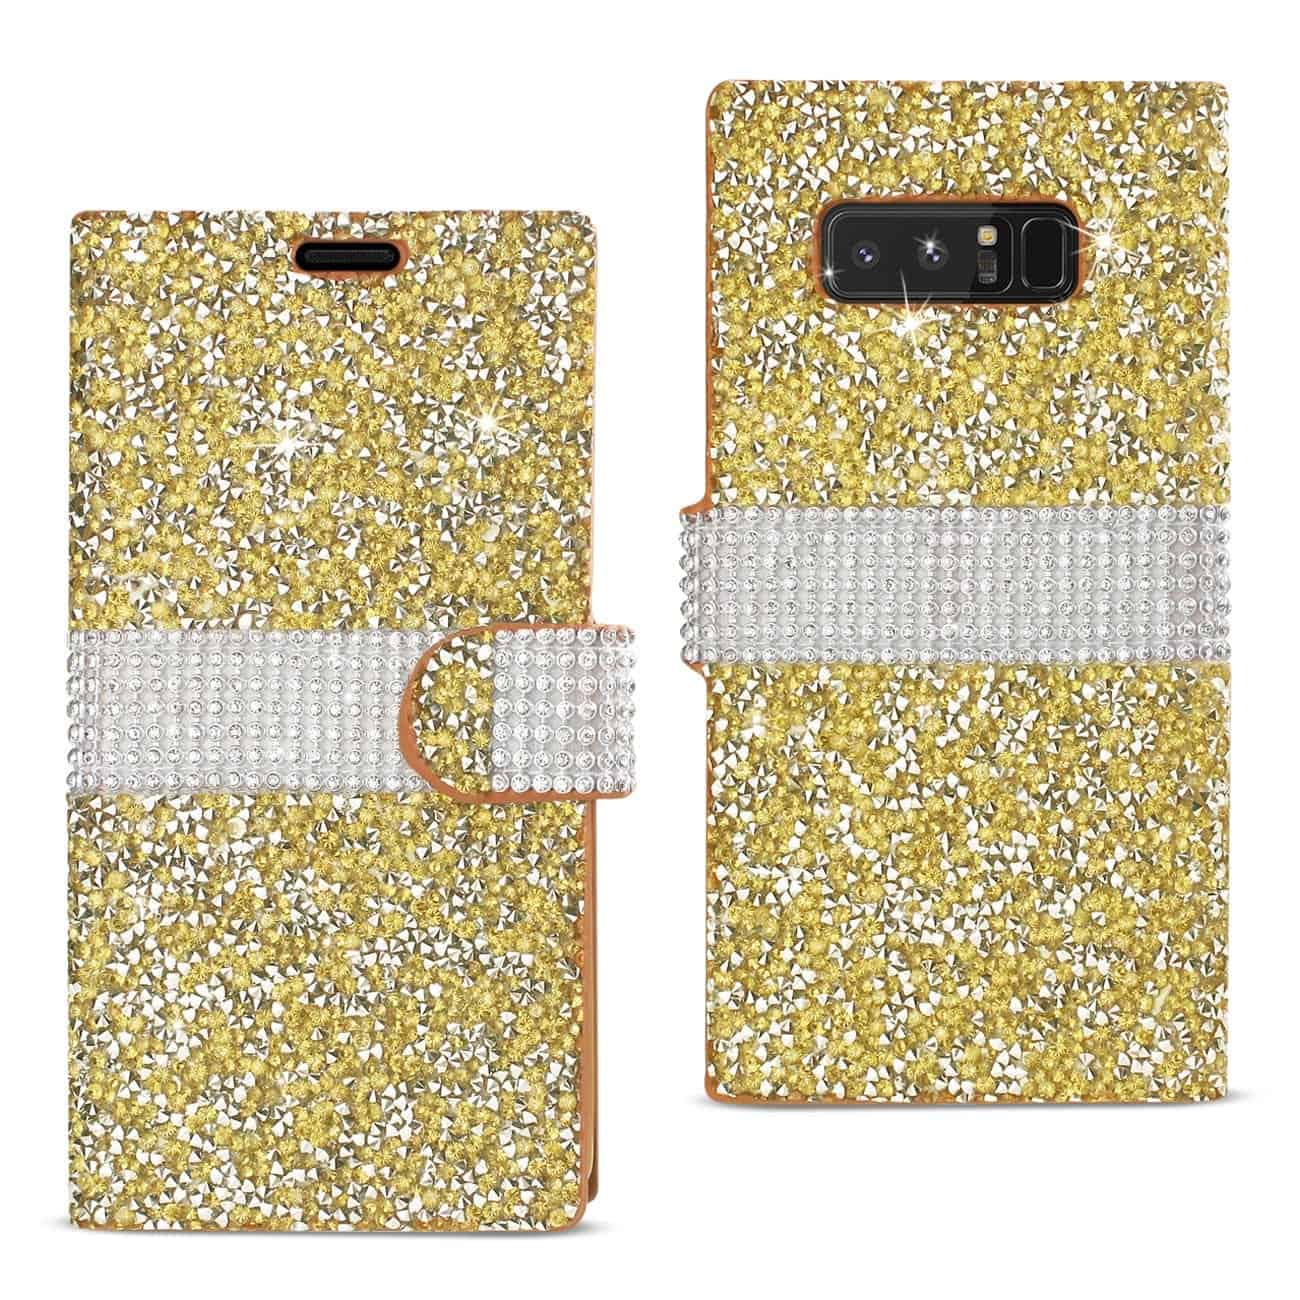 SAMSUNG GALAXY NOTE 8 DIAMOND RHINESTONE WALLET CASE IN GOLD